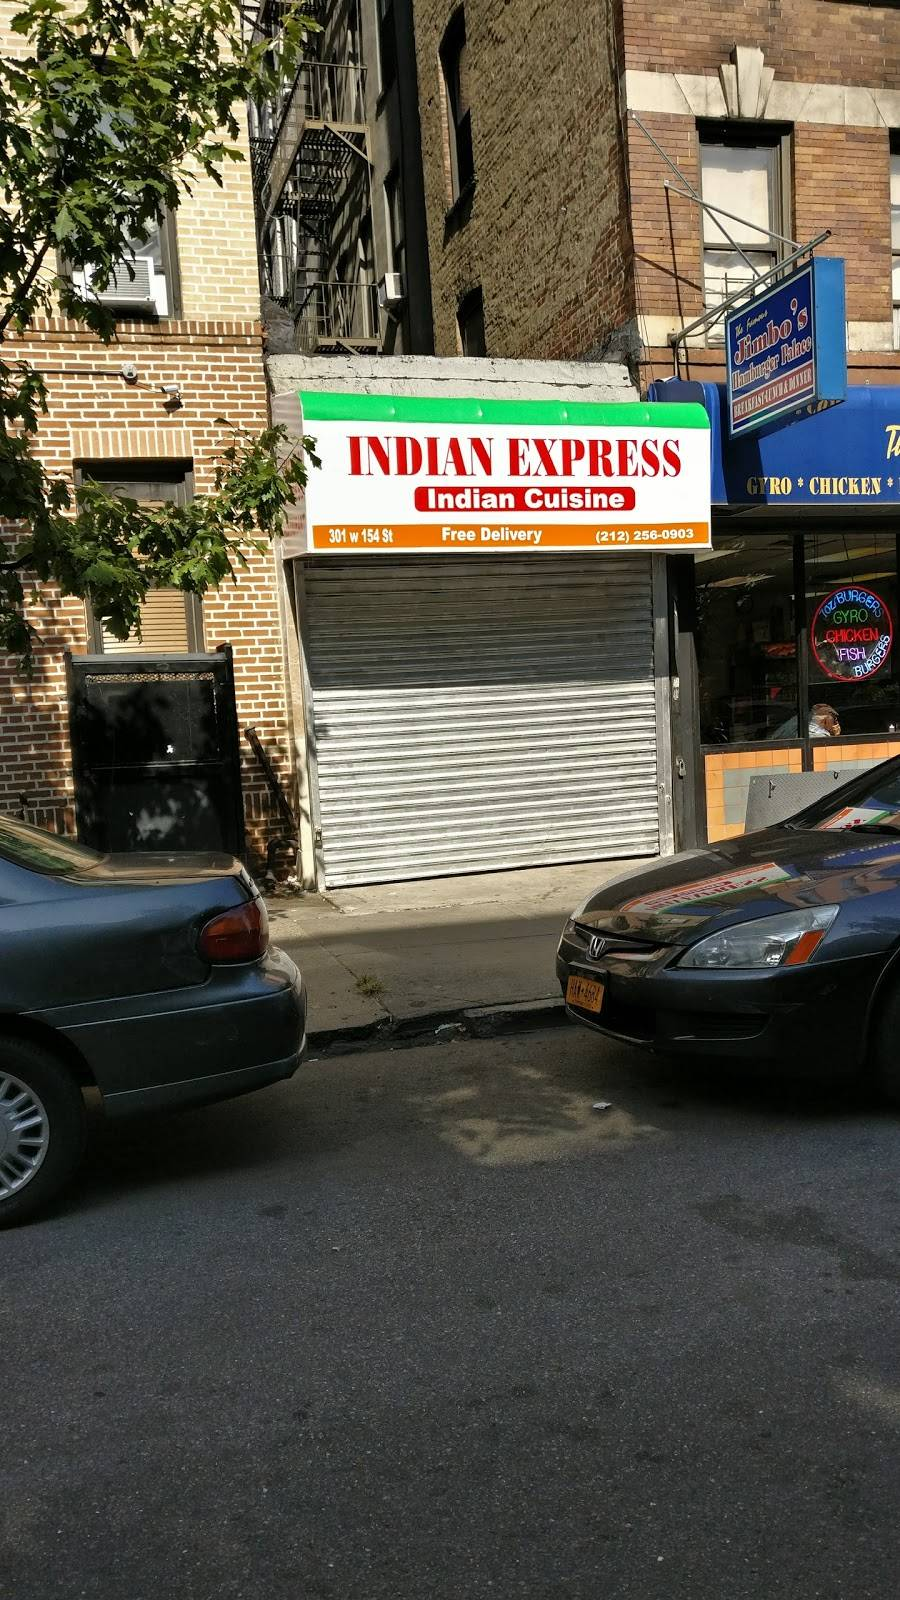 Indian Express   restaurant   301 W 154th St, New York, NY 10039, USA   2122560903 OR +1 212-256-0903